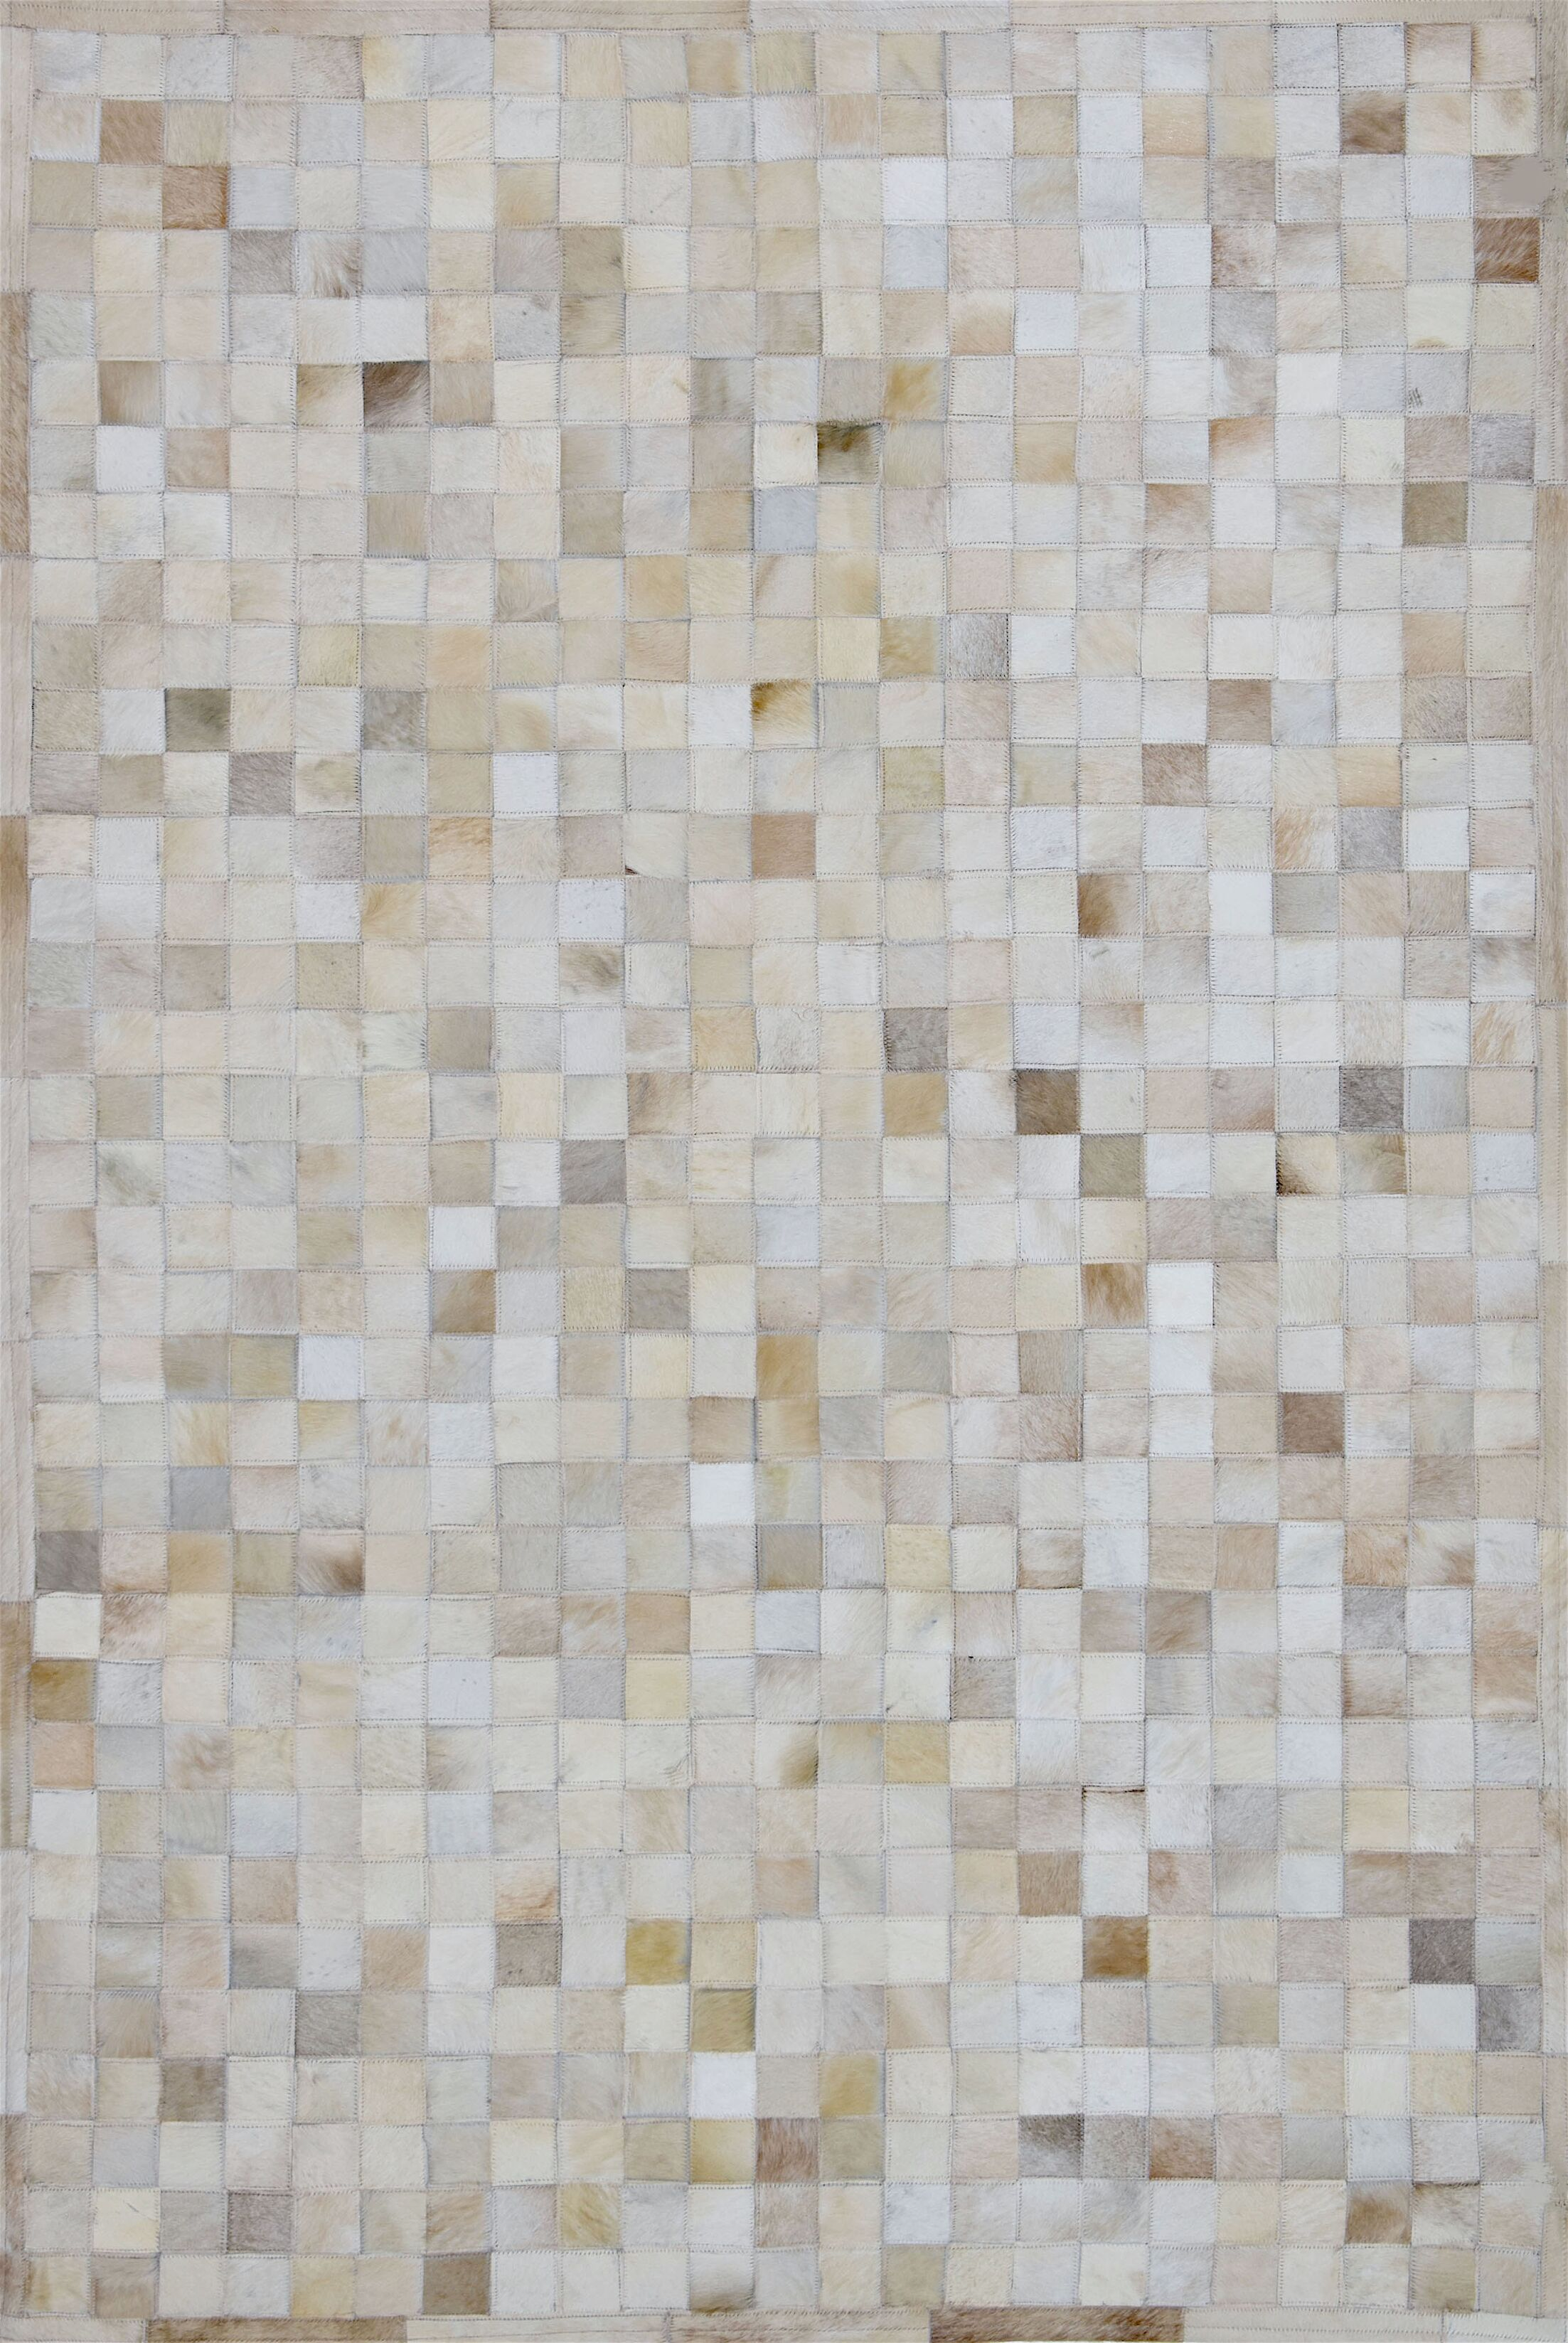 One-of-a-Kind Klahr Hand-Woven Cowhide Off White Area Rug Rug Size: Rectangle 5' x 8'